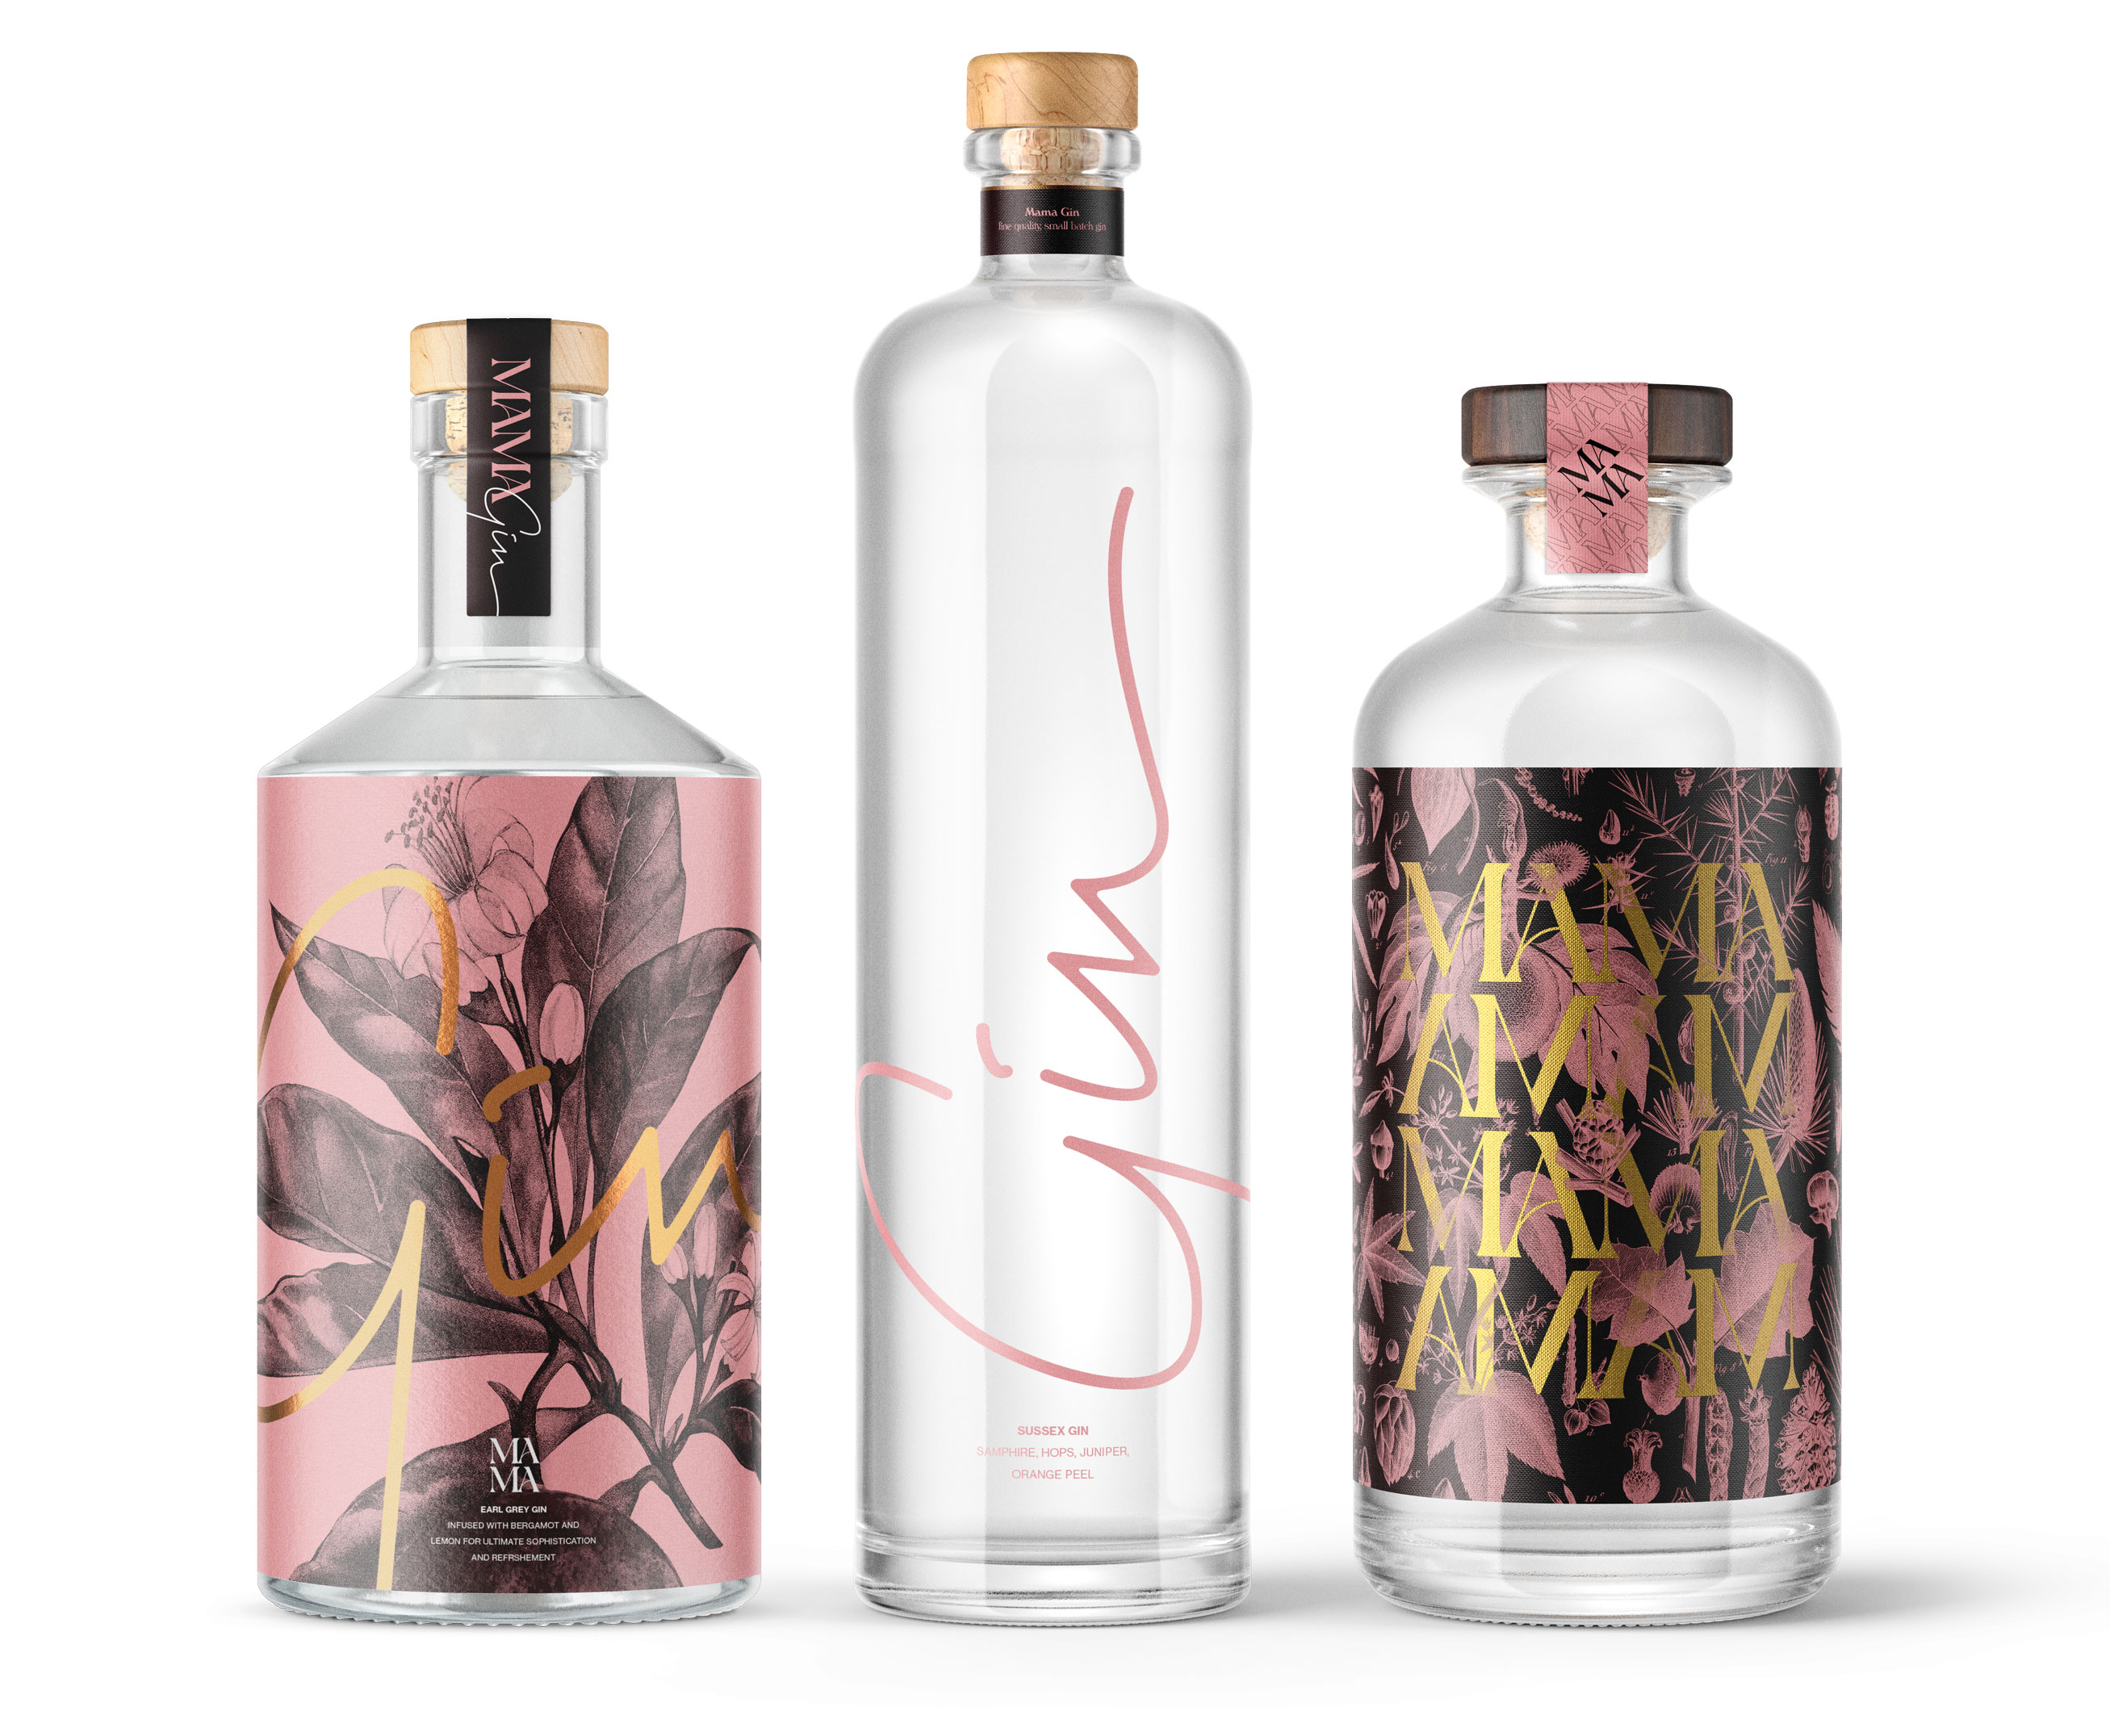 Mama Gin bottle packaging